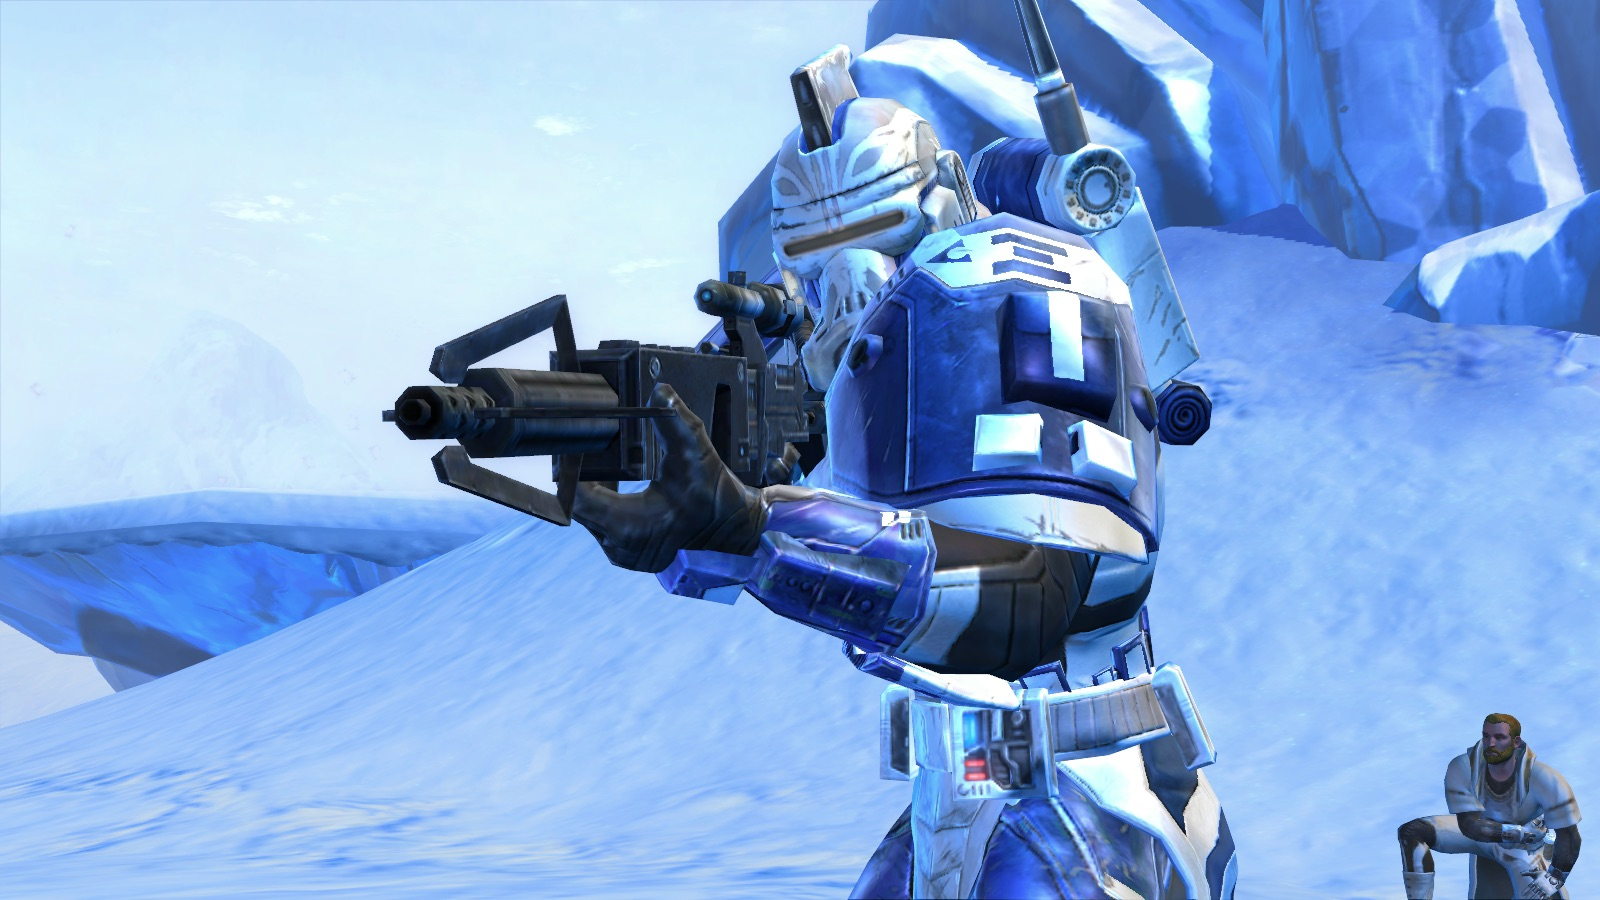 Star Wars: The Old Republic - A Republic Trooper